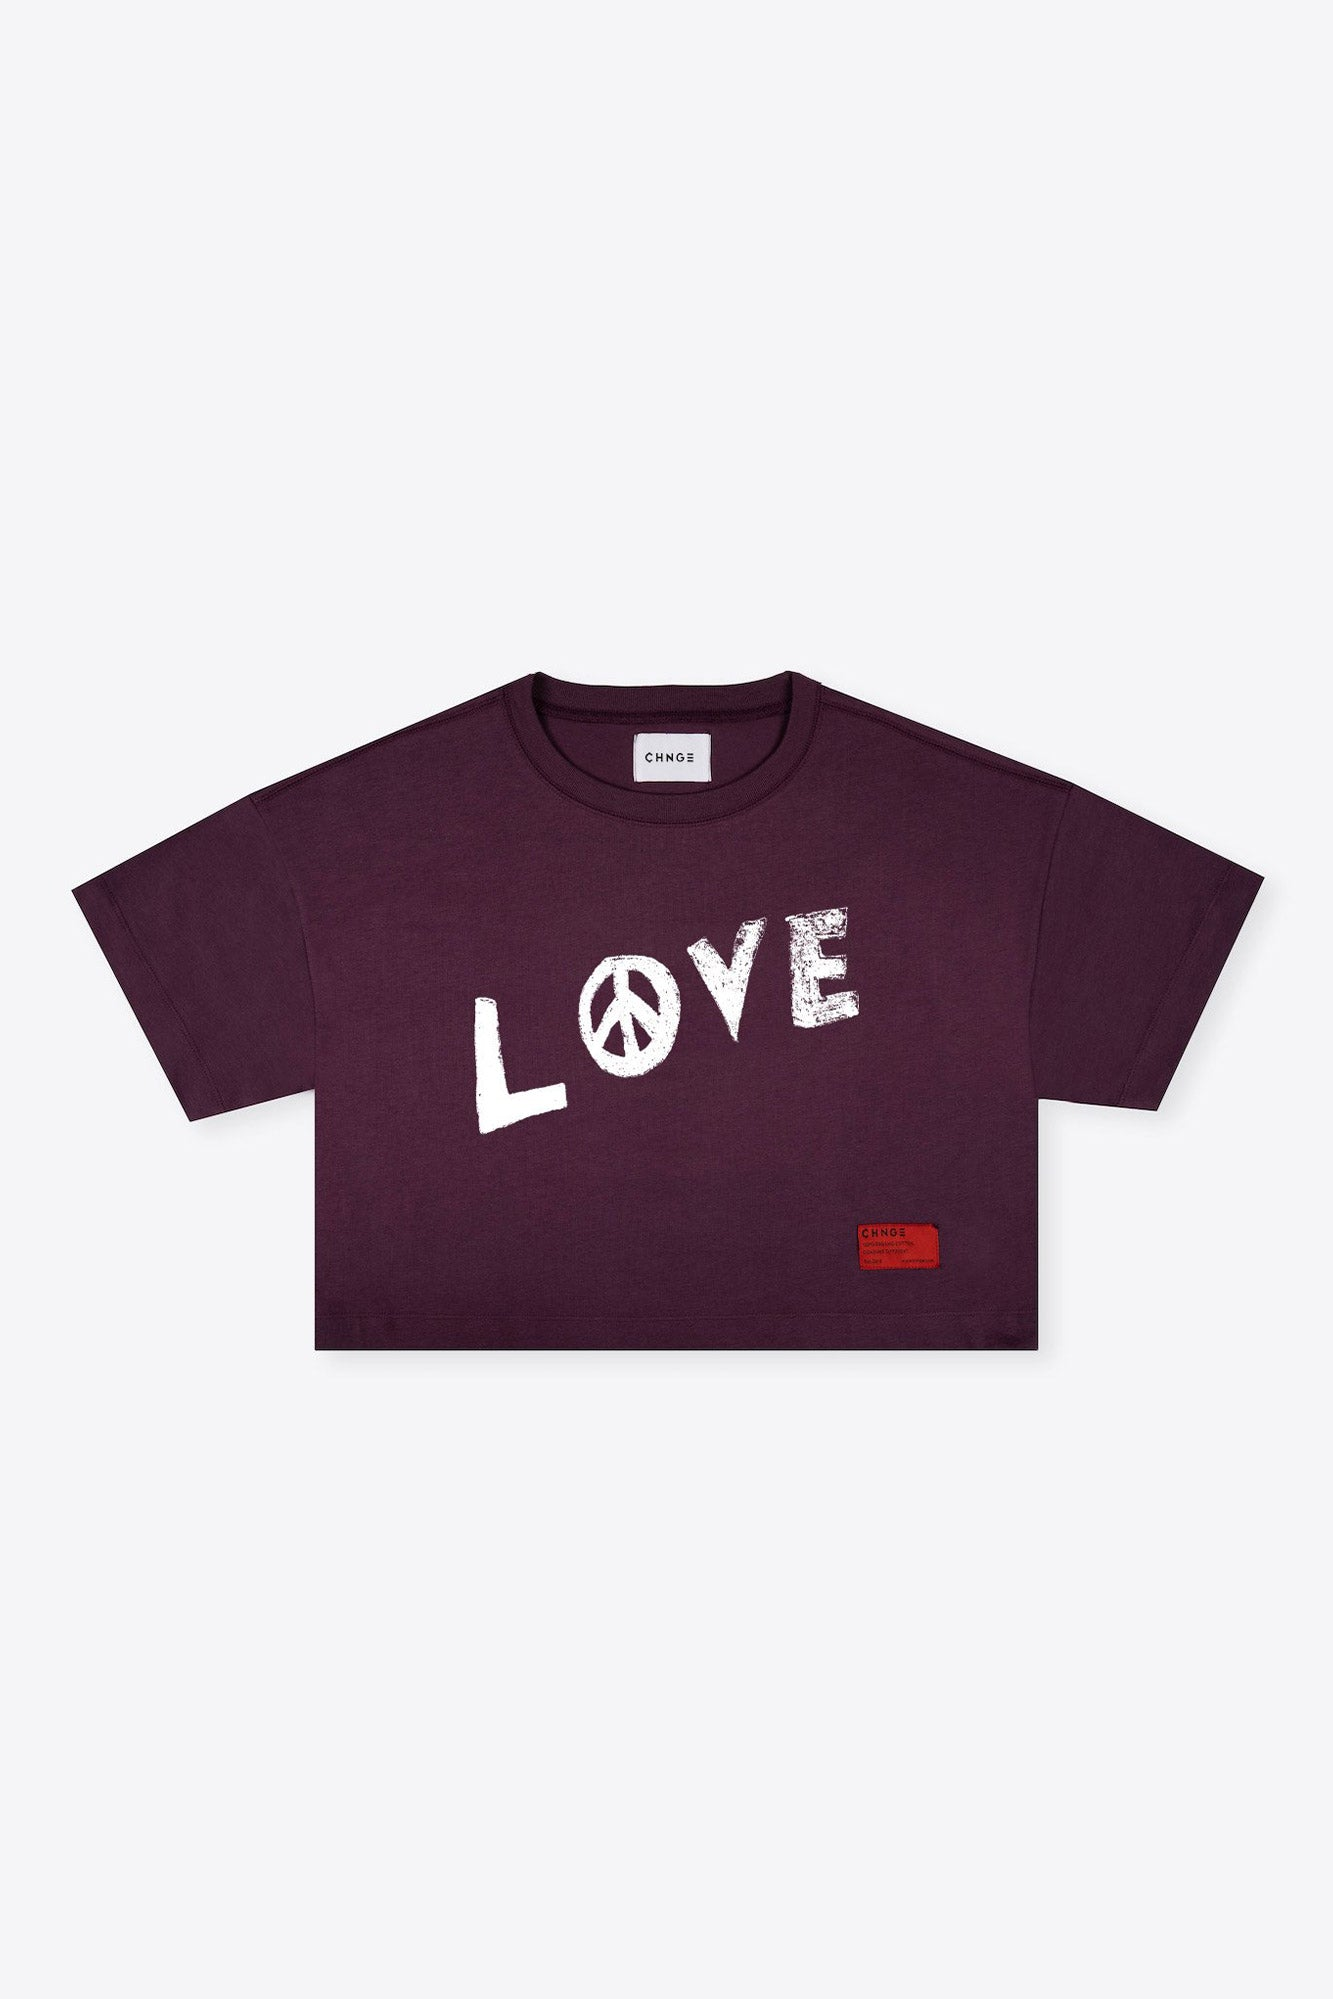 Love Peace Crop (Maroon)